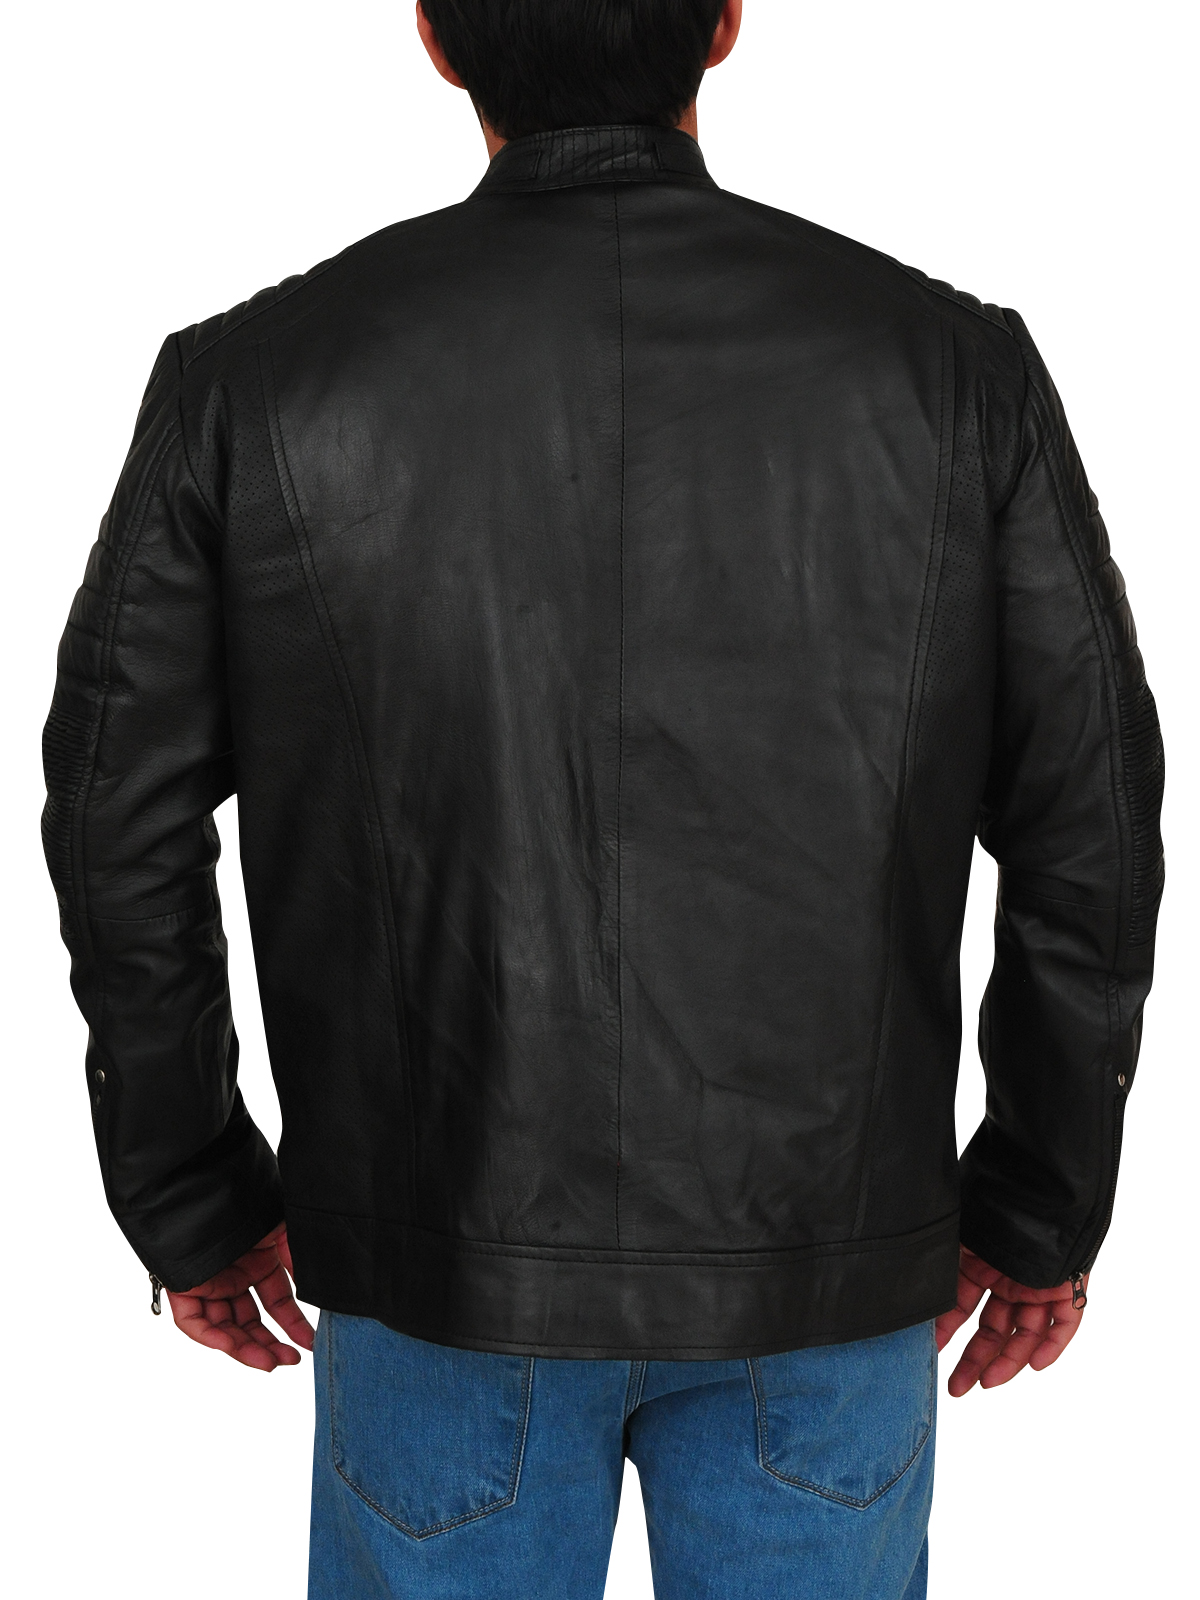 Riverdale Chuck Clayton Cafe Racer Jacket